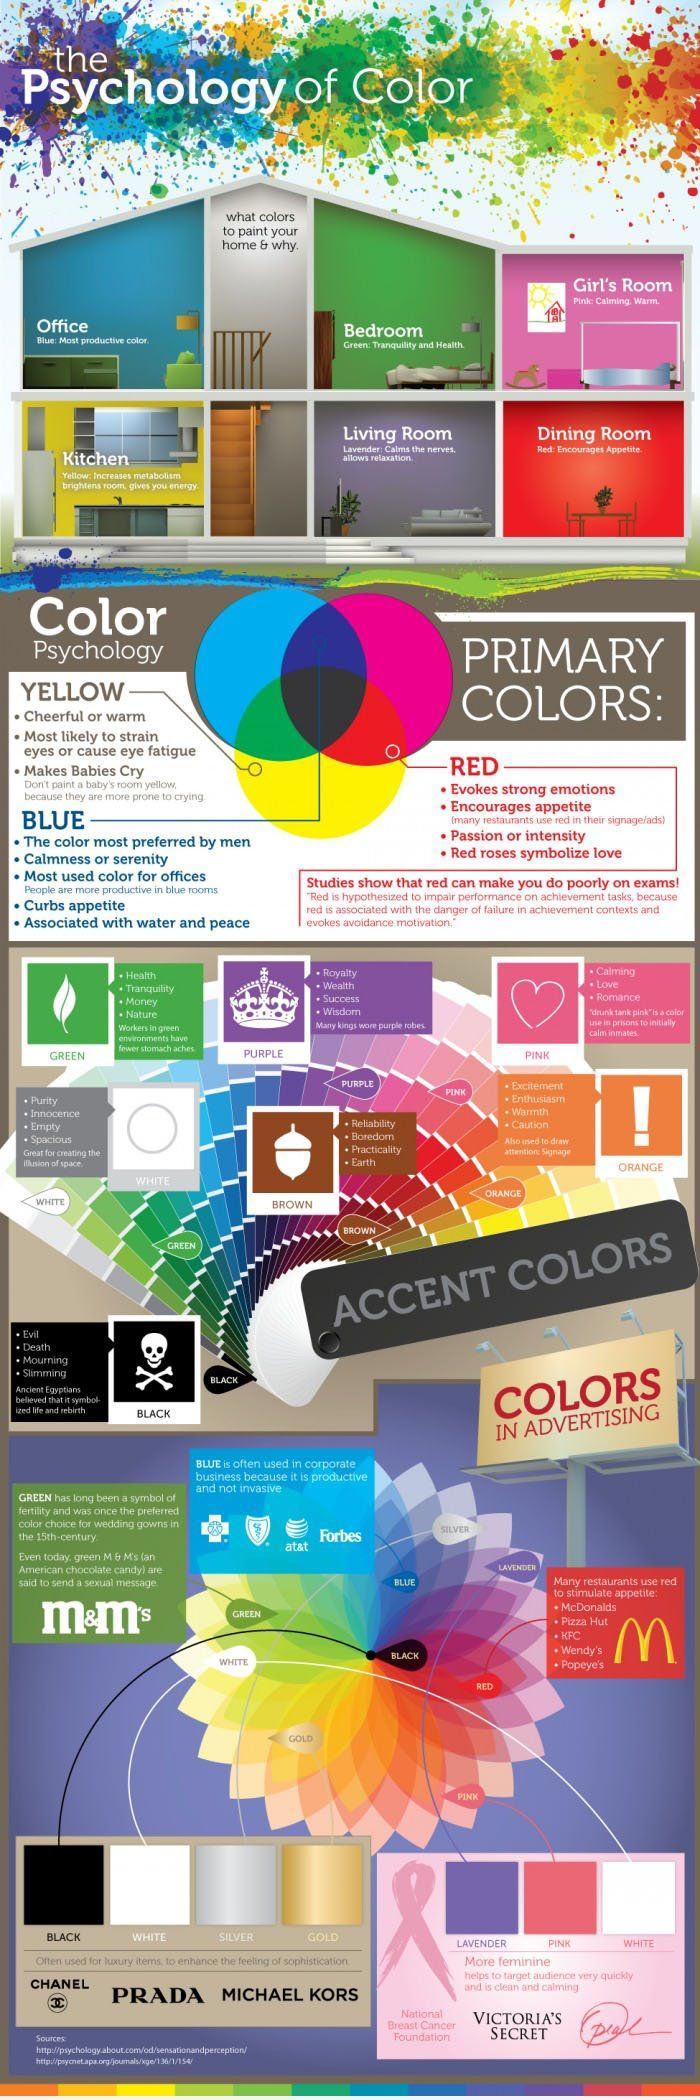 The psychology of color: Colors Charts, Website, Web Site, Psychology Of Colors, Paintings Colors, Colors Psychology, Internet Site, Rooms Colors, Infographic